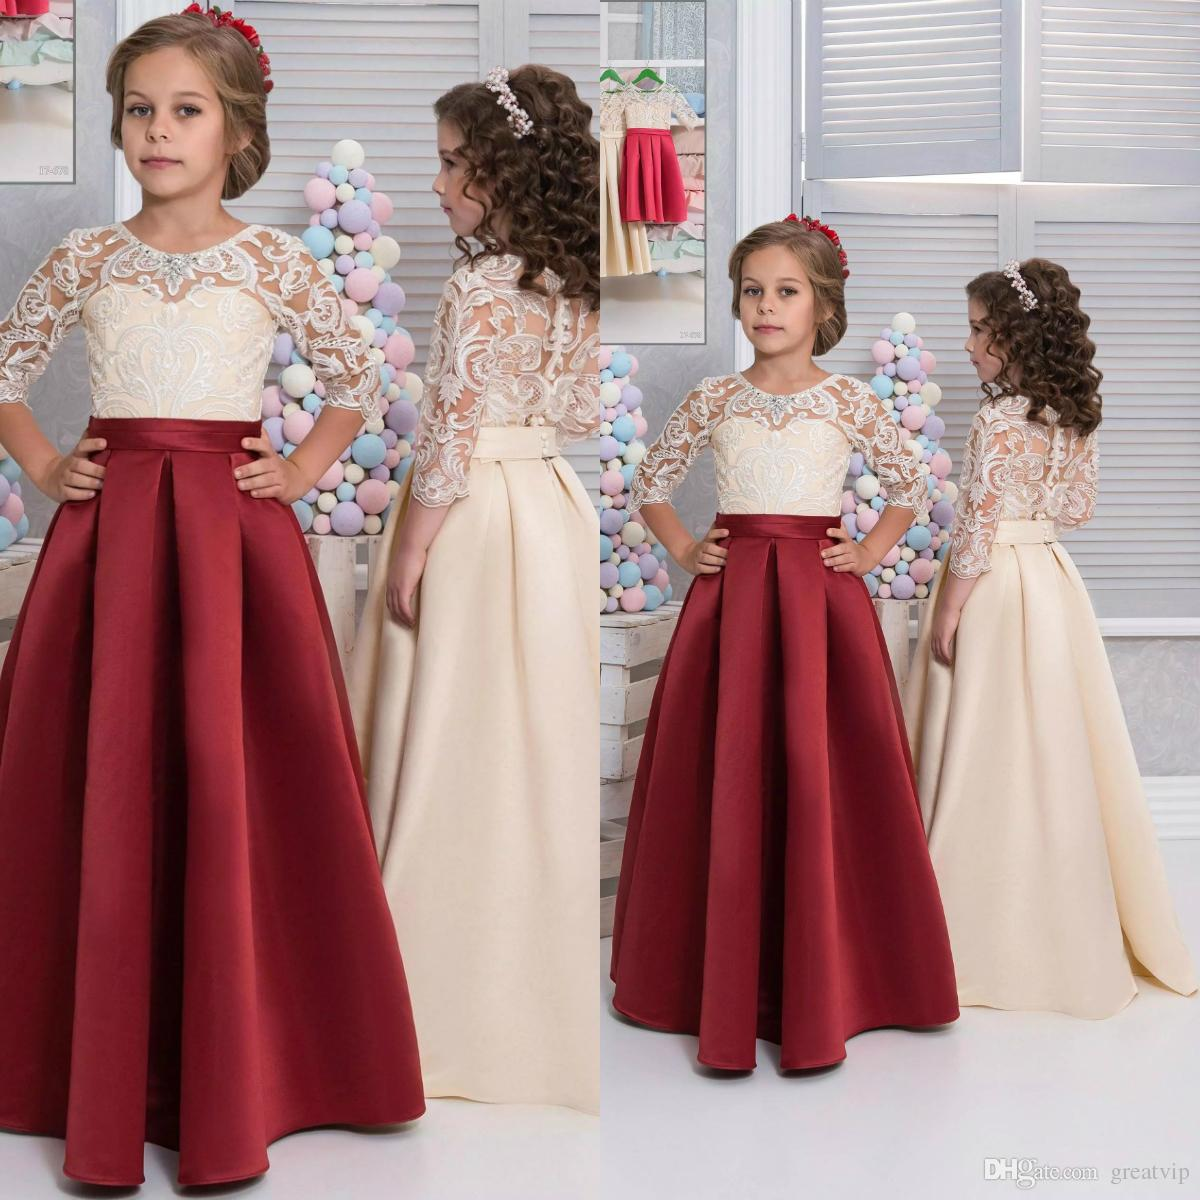 2019 Cheap Flower Girl Dresses A Line Lace Beads Half Sleeve Satin ...